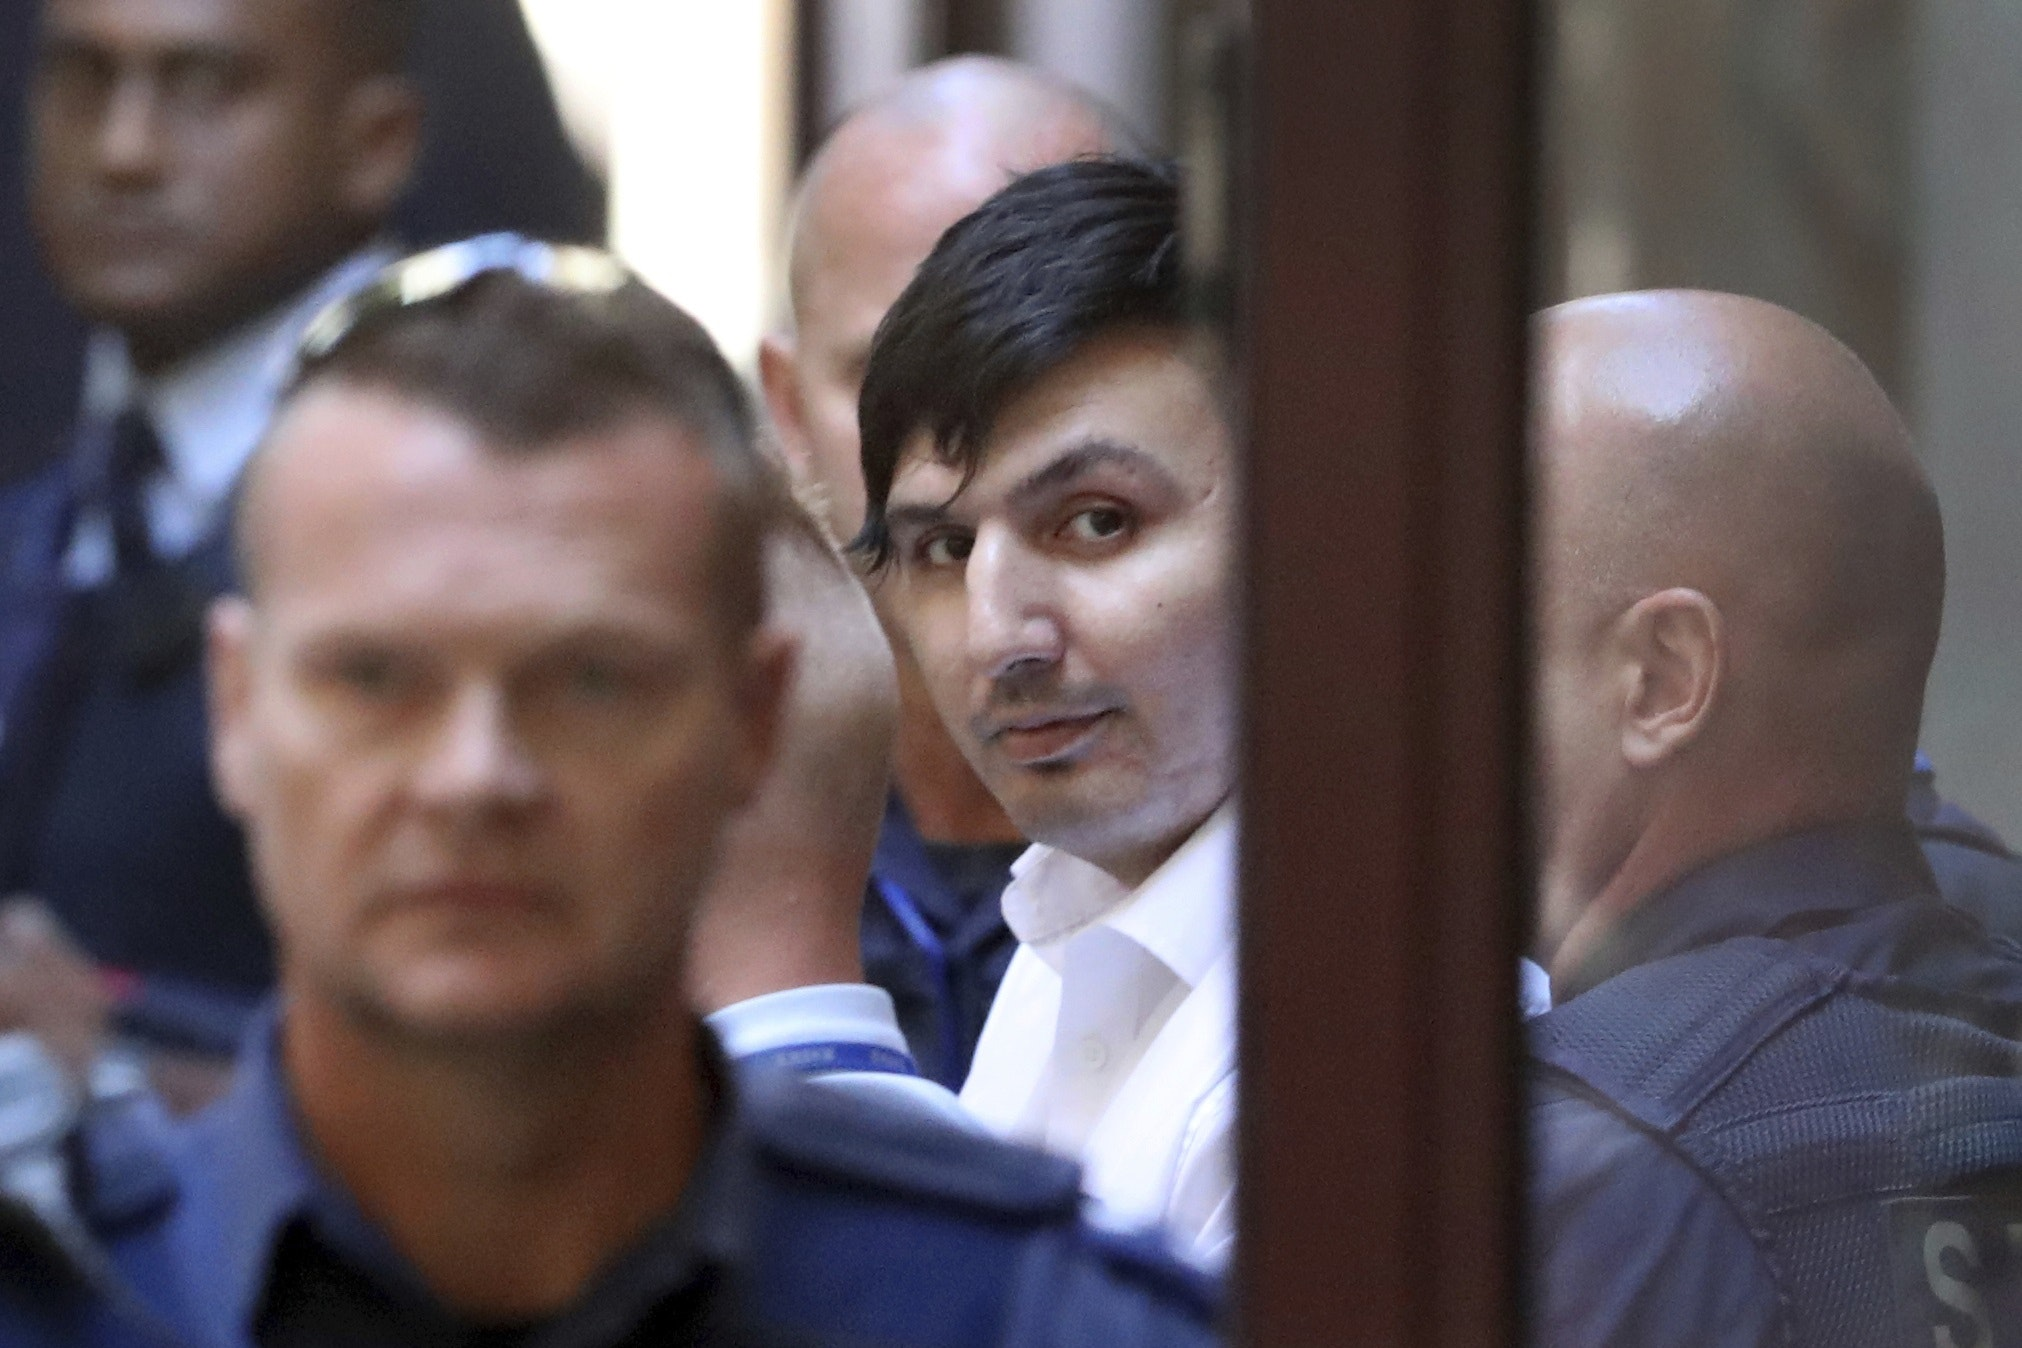 James Gargasoulas, centre, leaves the Victorian Supreme Court after sentencing, in Melbourne